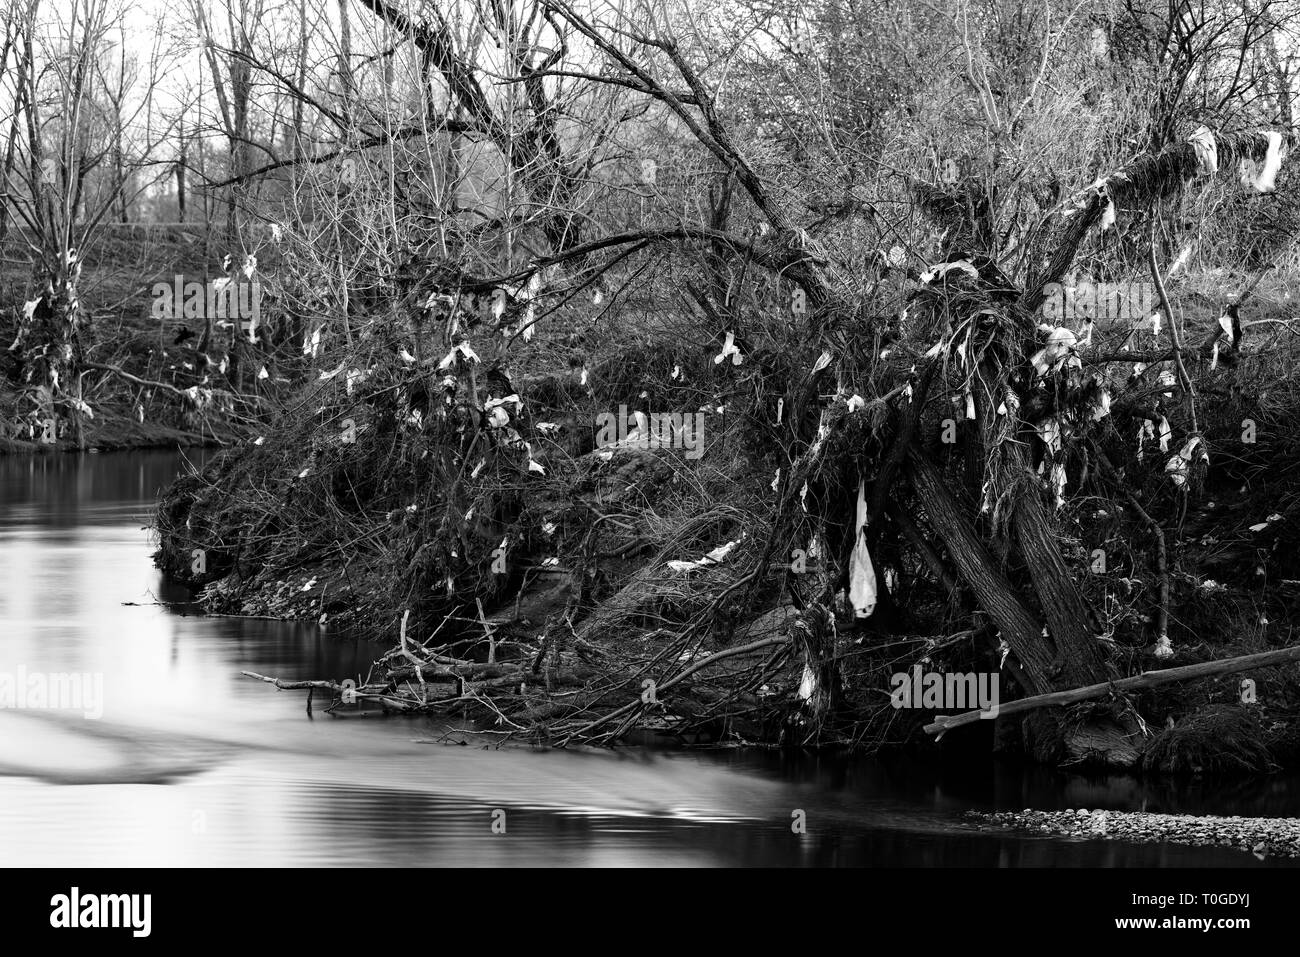 Plastic waste pollution on river bank trees - Stock Image